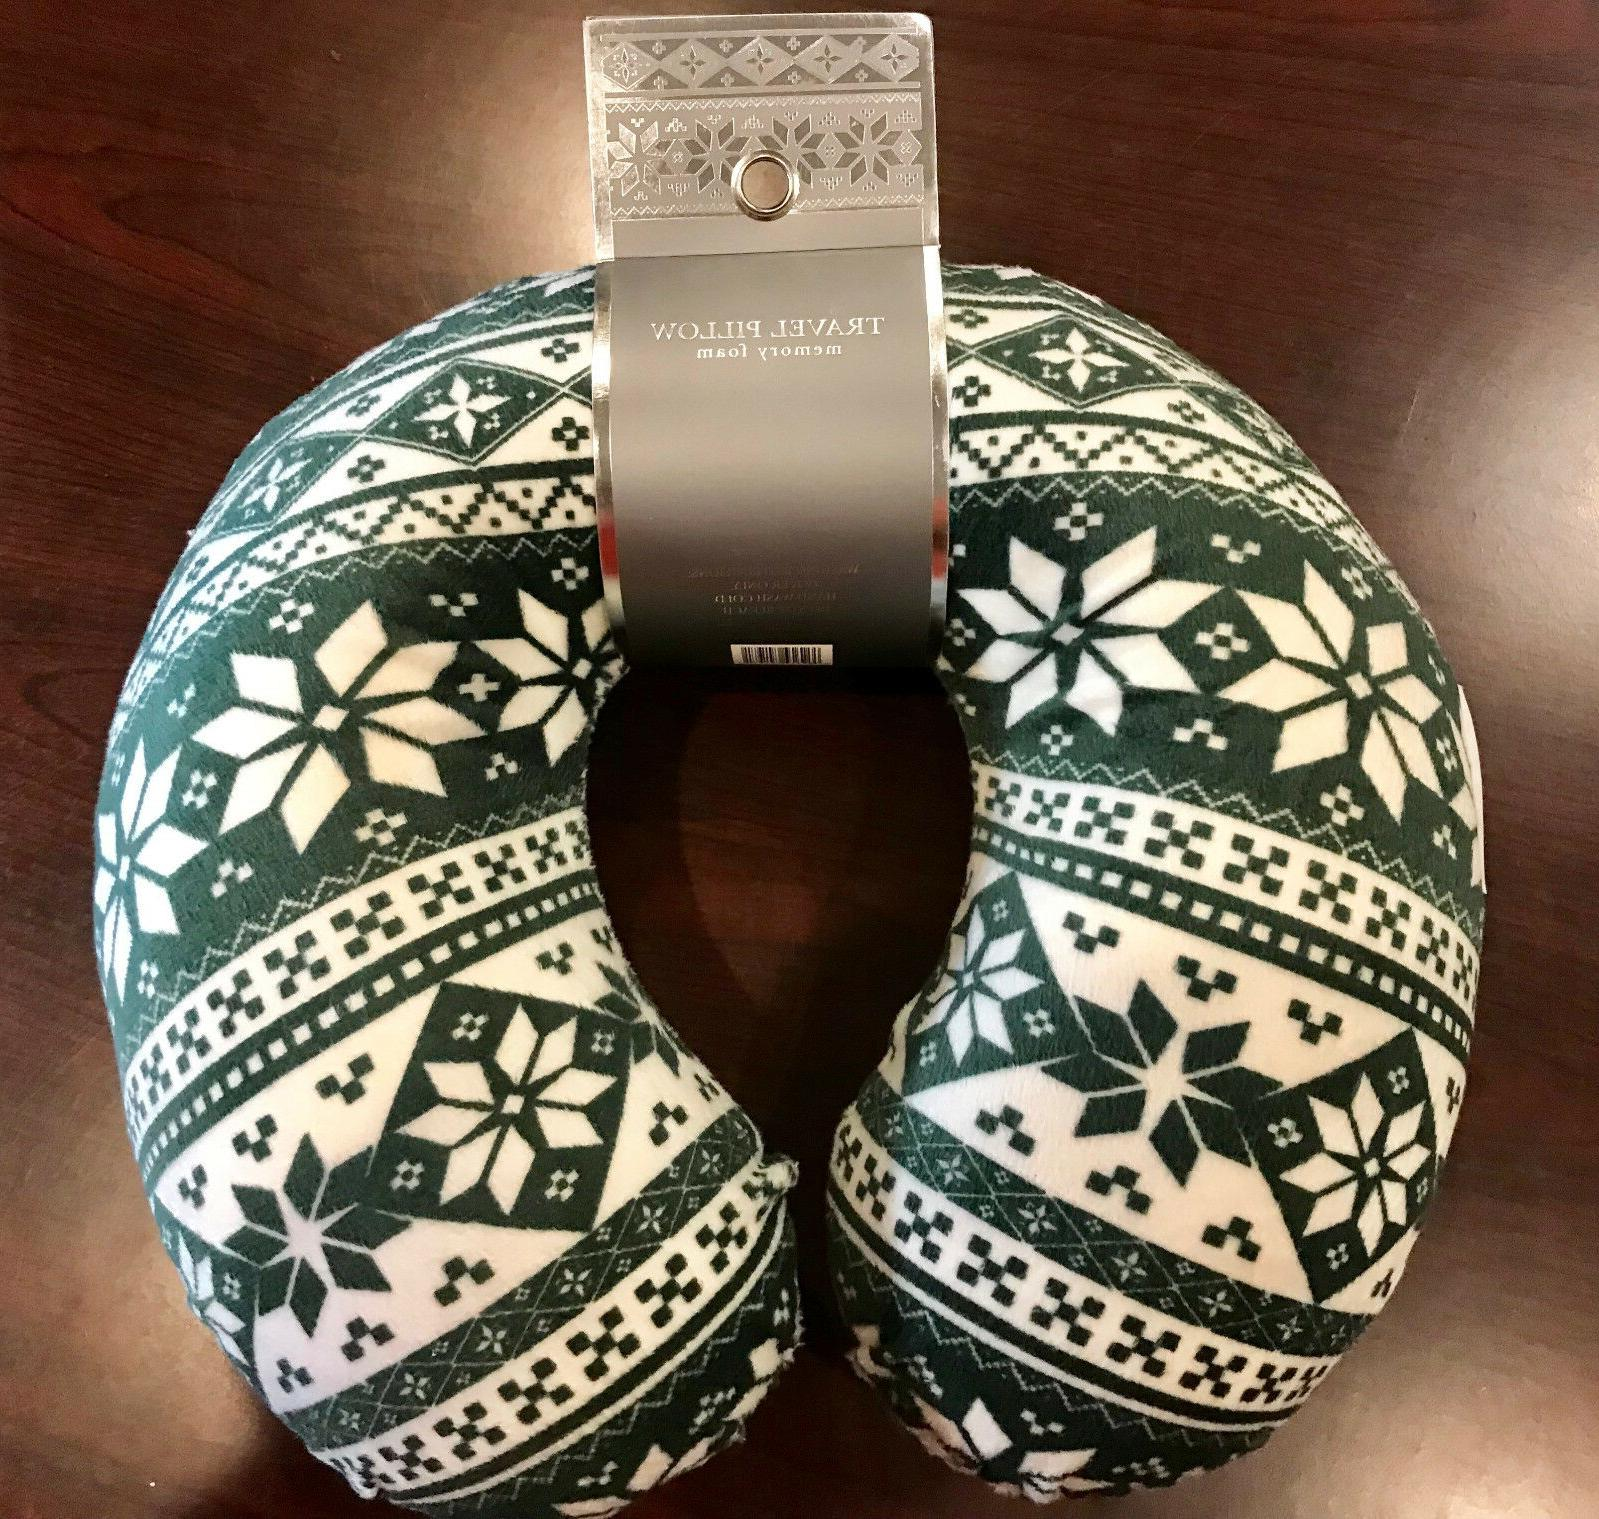 Northpoint NORDIC Memory Foam Neck Travel Pillow, Super Soft